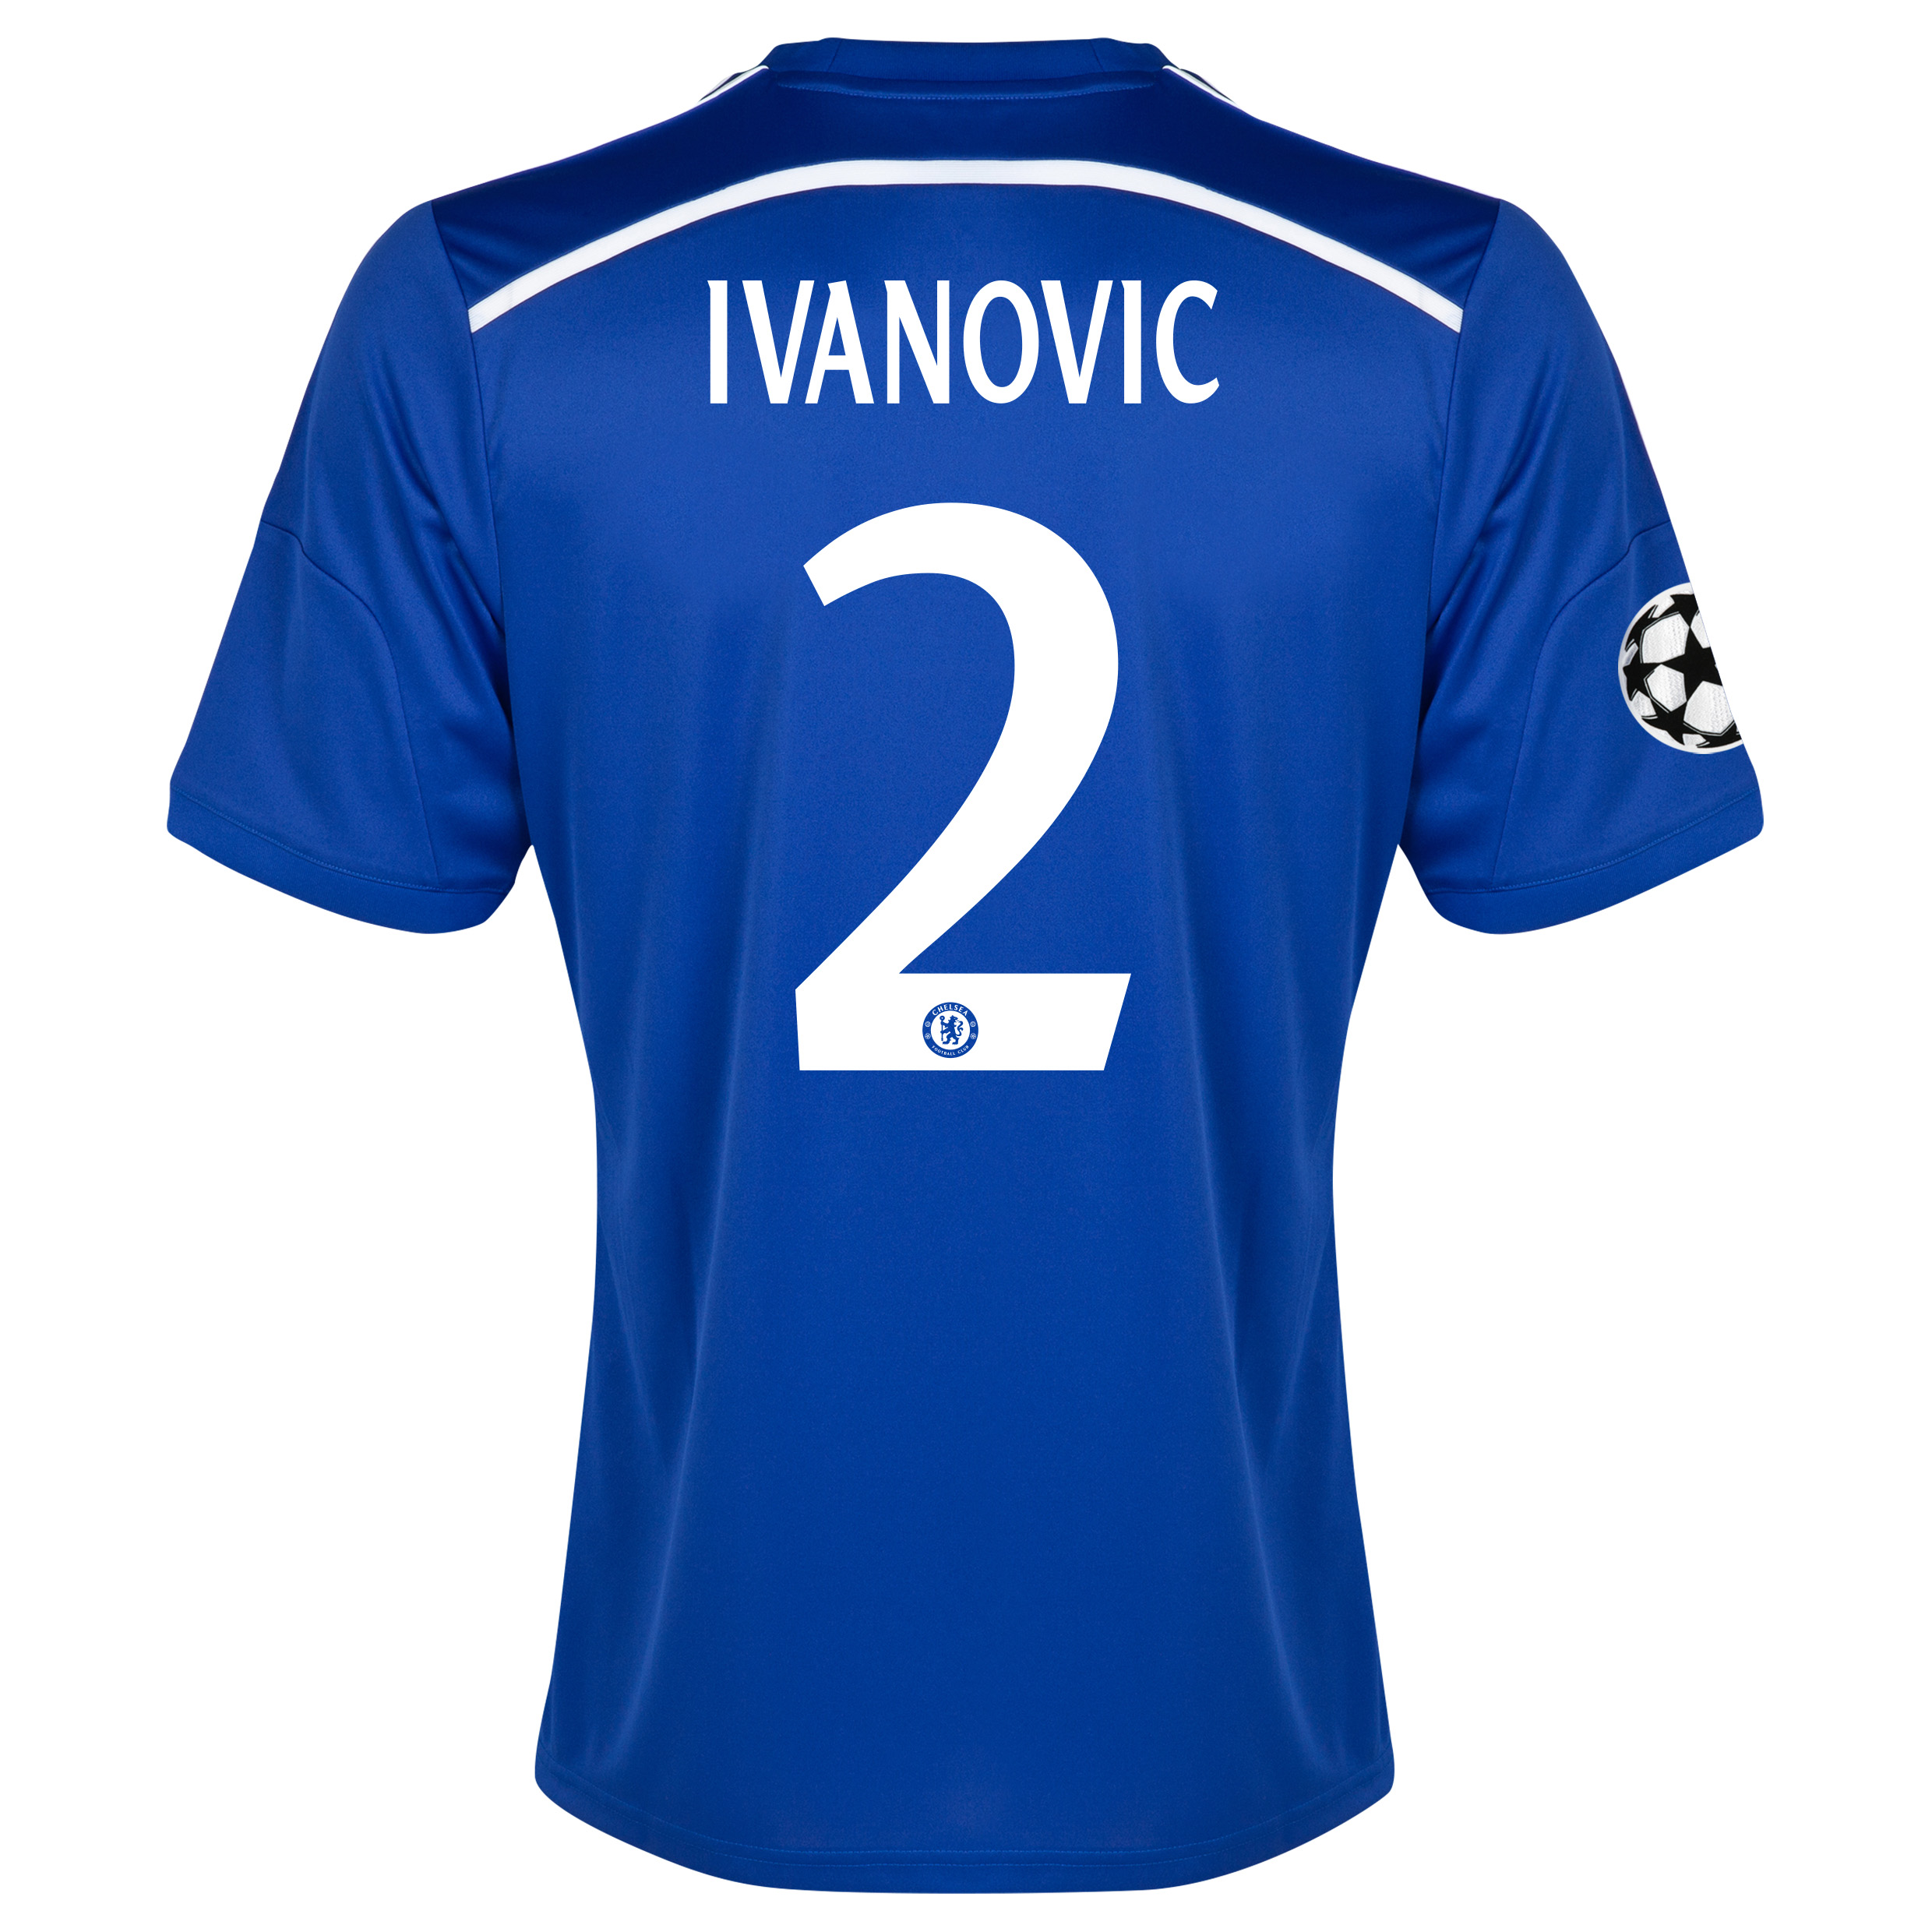 Chelsea UEFA Champions League Home Shirt 2014/15 Blue with Ivanovic 2 printing